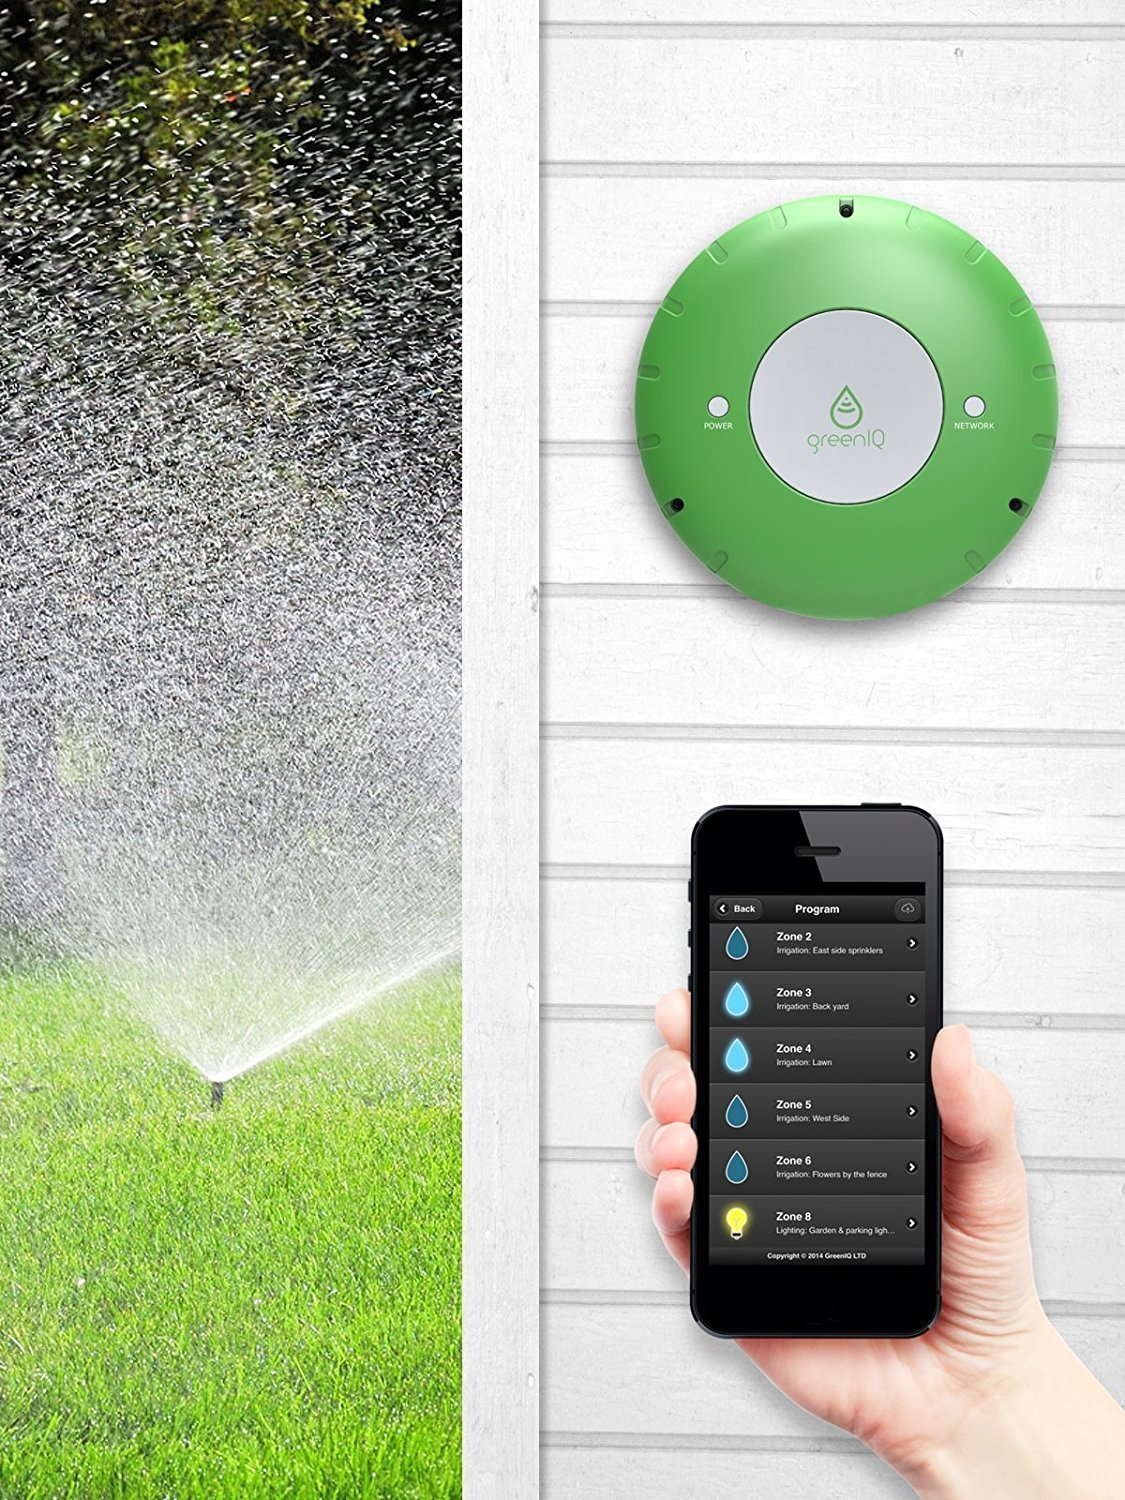 GreenIQ Smart Sprinkler Controller 6 Zone Wi-Fi Waterproof Hub